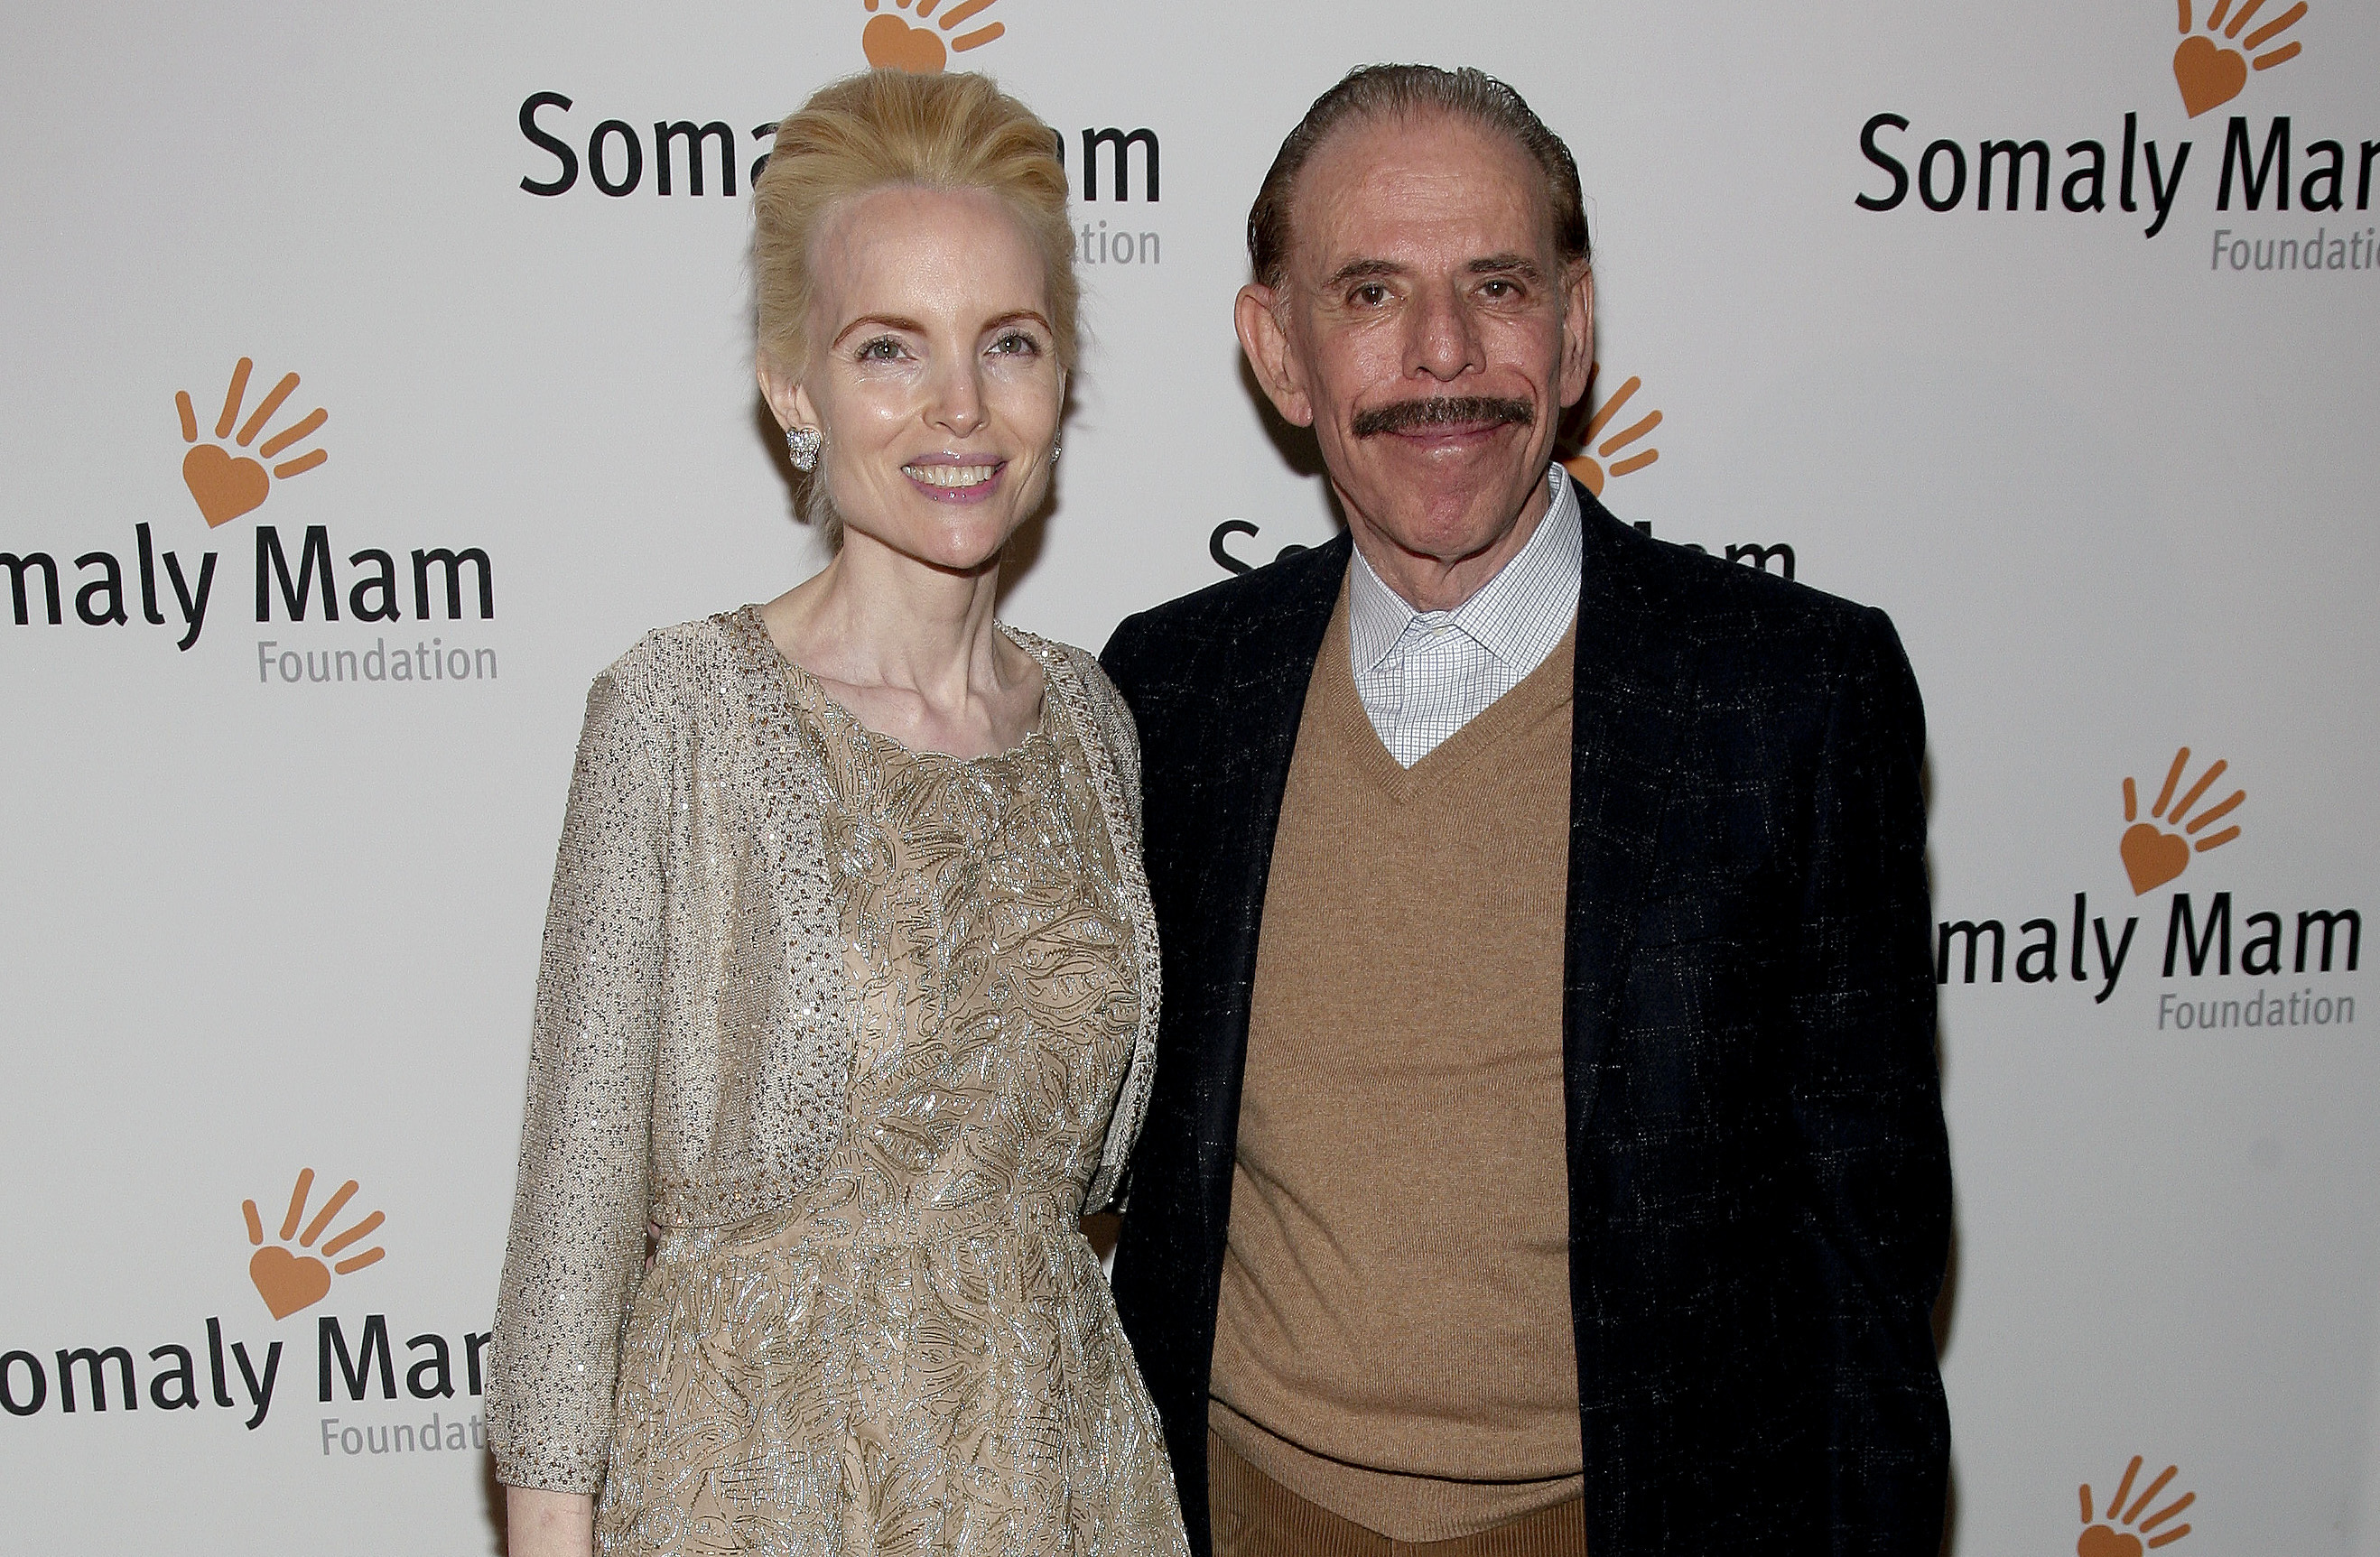 Mary Max Wife Of Peter Max Dies In Suspected Suicide Washington Times